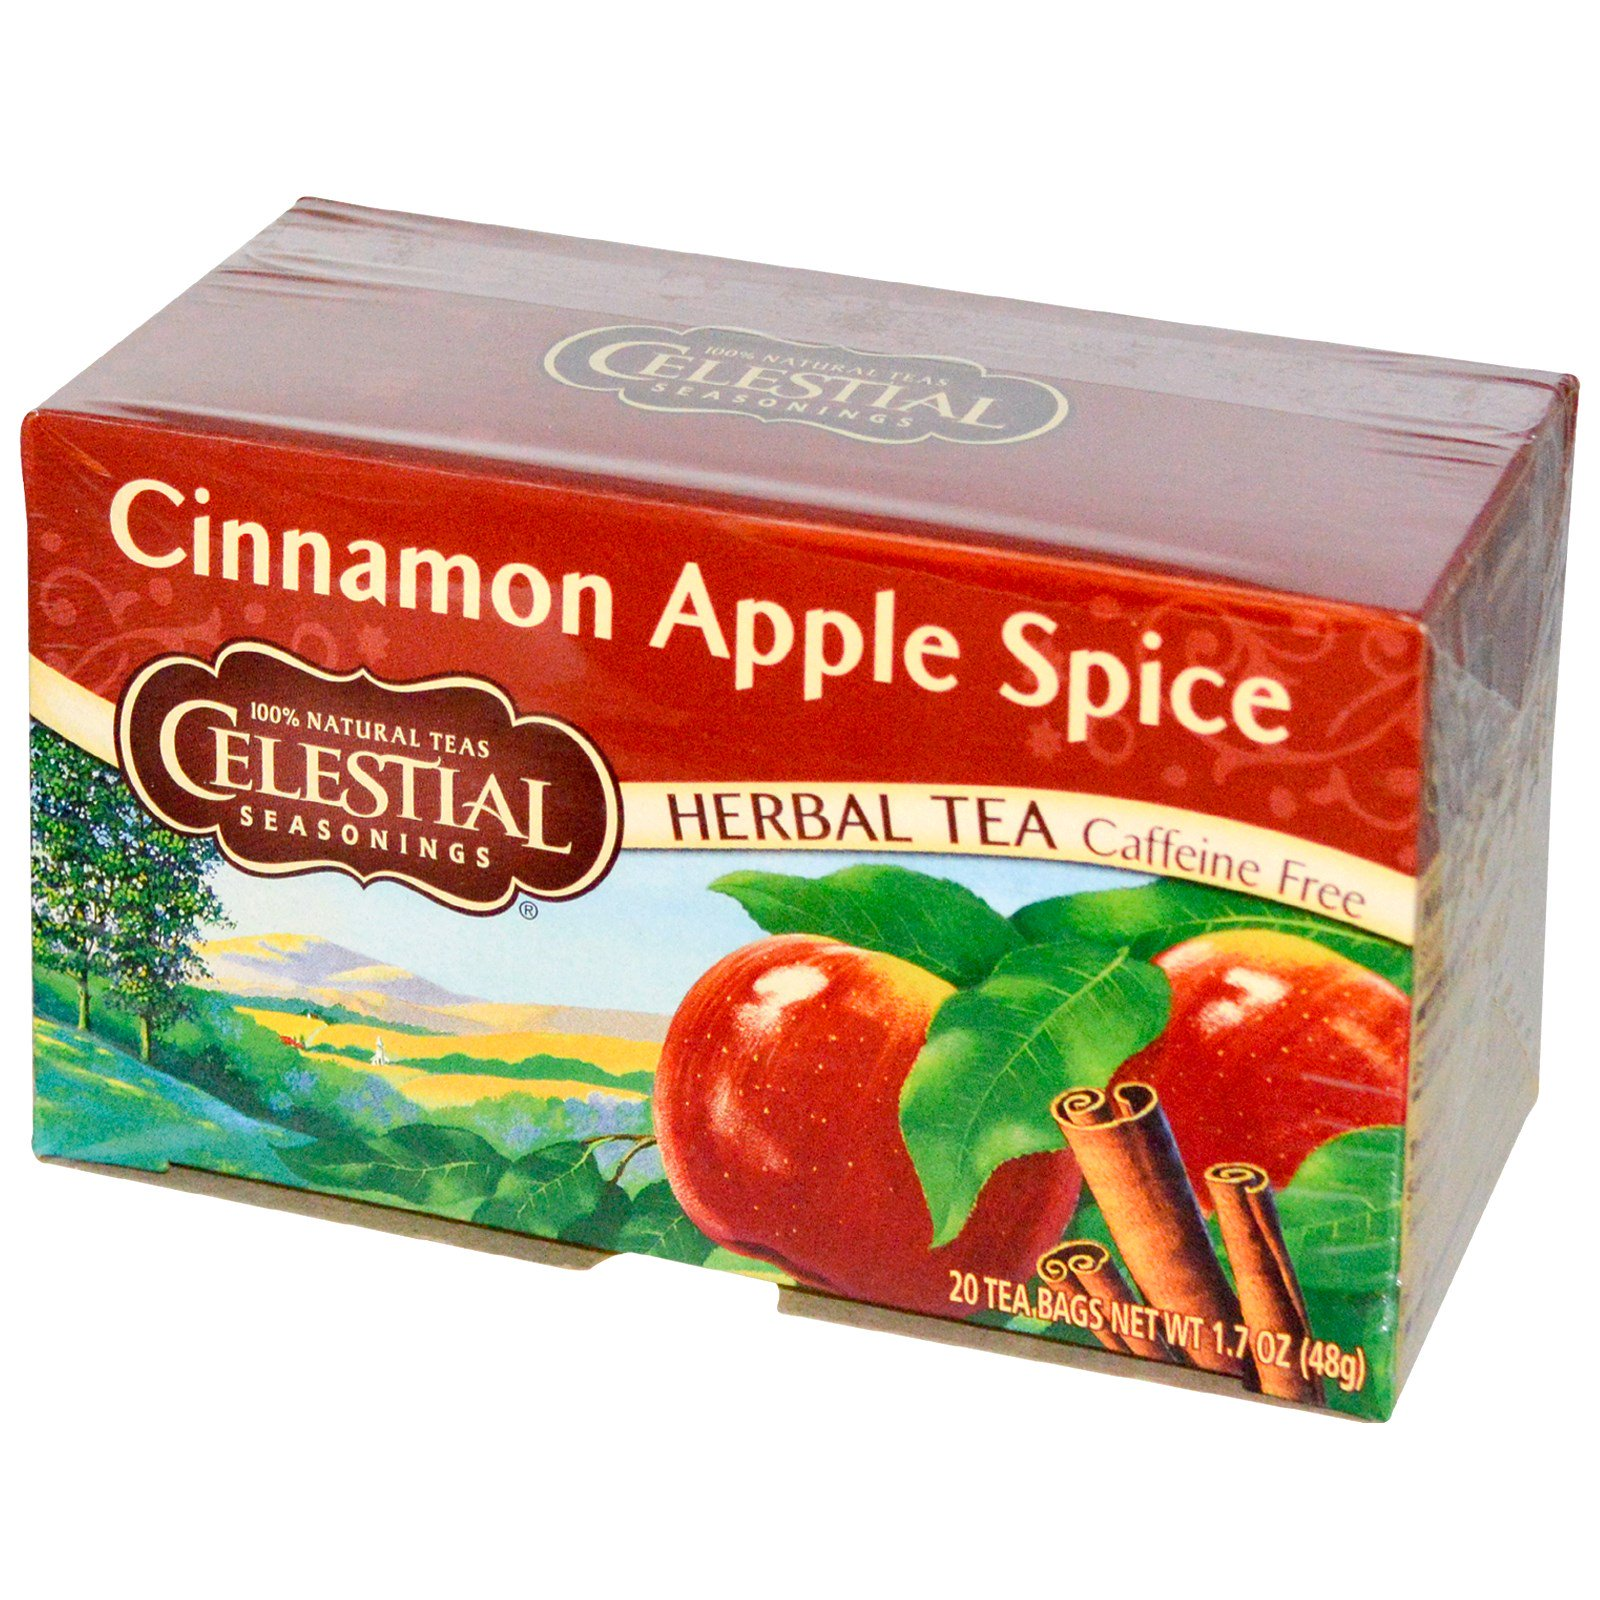 Celestial Seasonings Cinnamon Le E Caffeine Free 20 Tea Bags 1 7 Oz